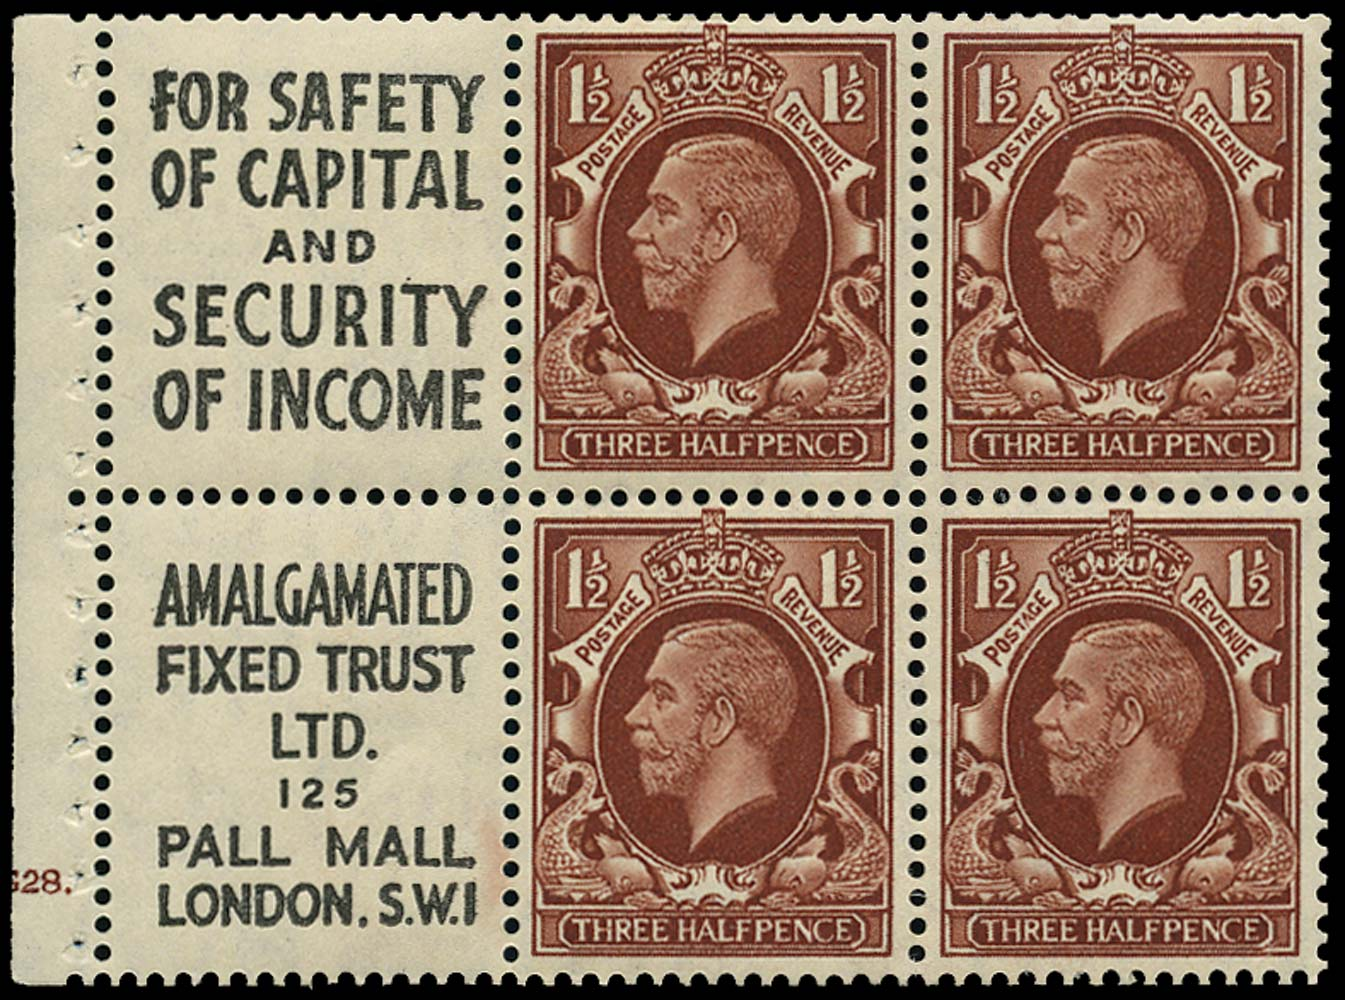 GB 1935  SG441e Booklet pane (small format)